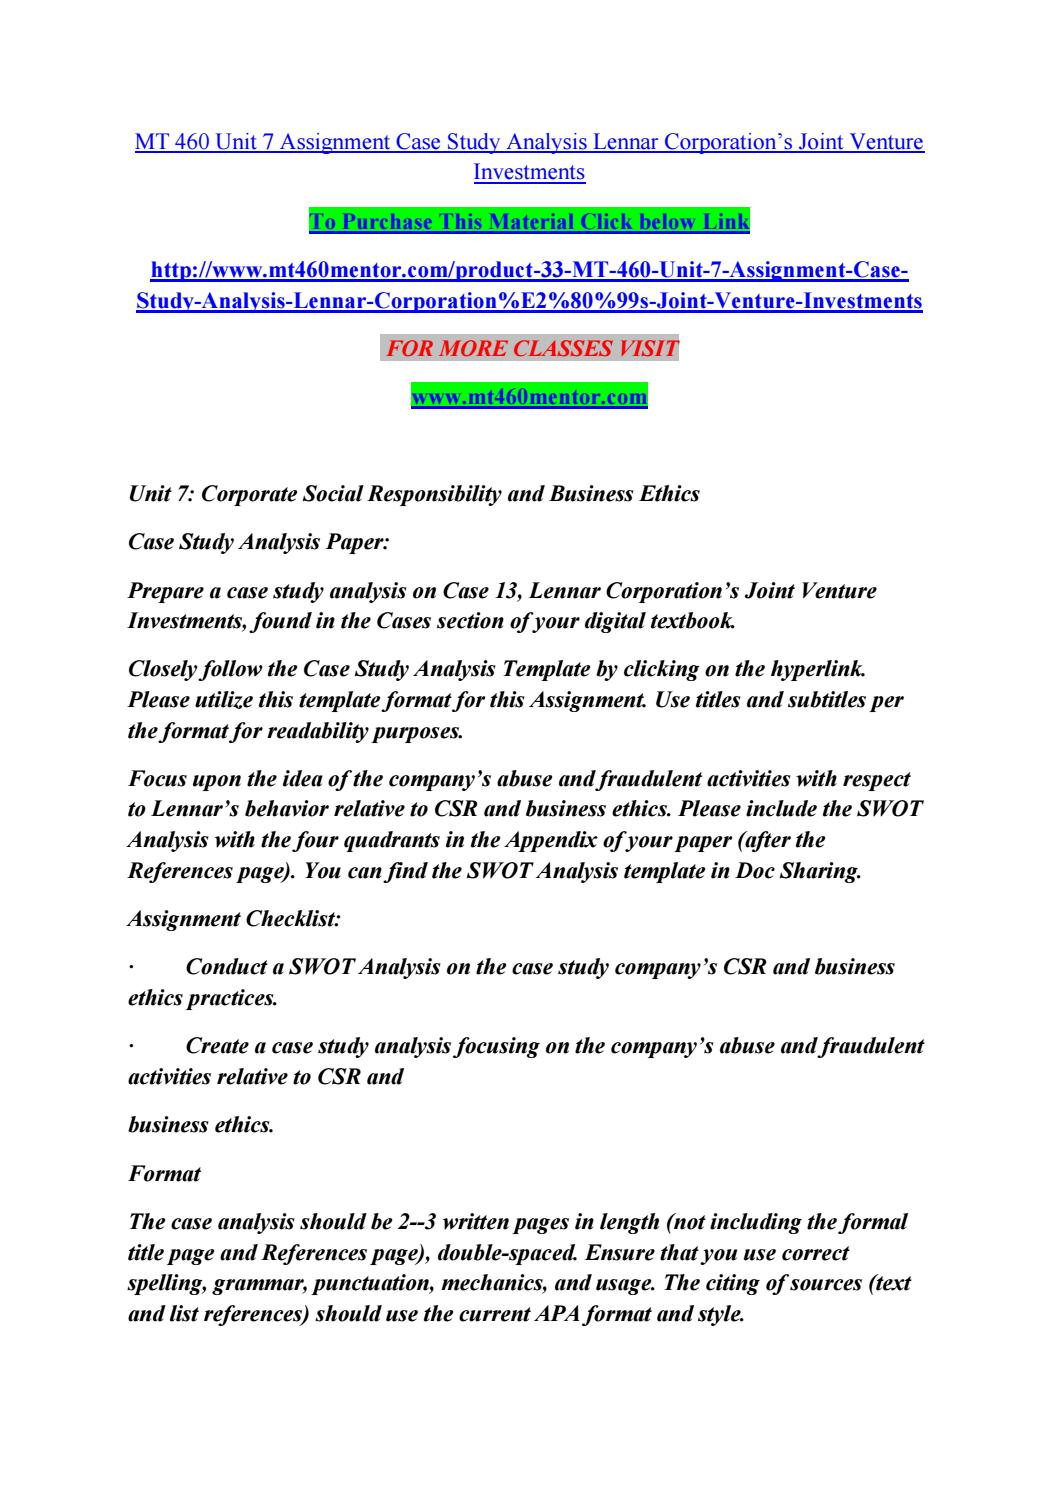 mt 460 unit 7 assignment case study analysis lennar corporation s mt 460 unit 7 assignment case study analysis lennar corporation s joint venture investments by singht rock2